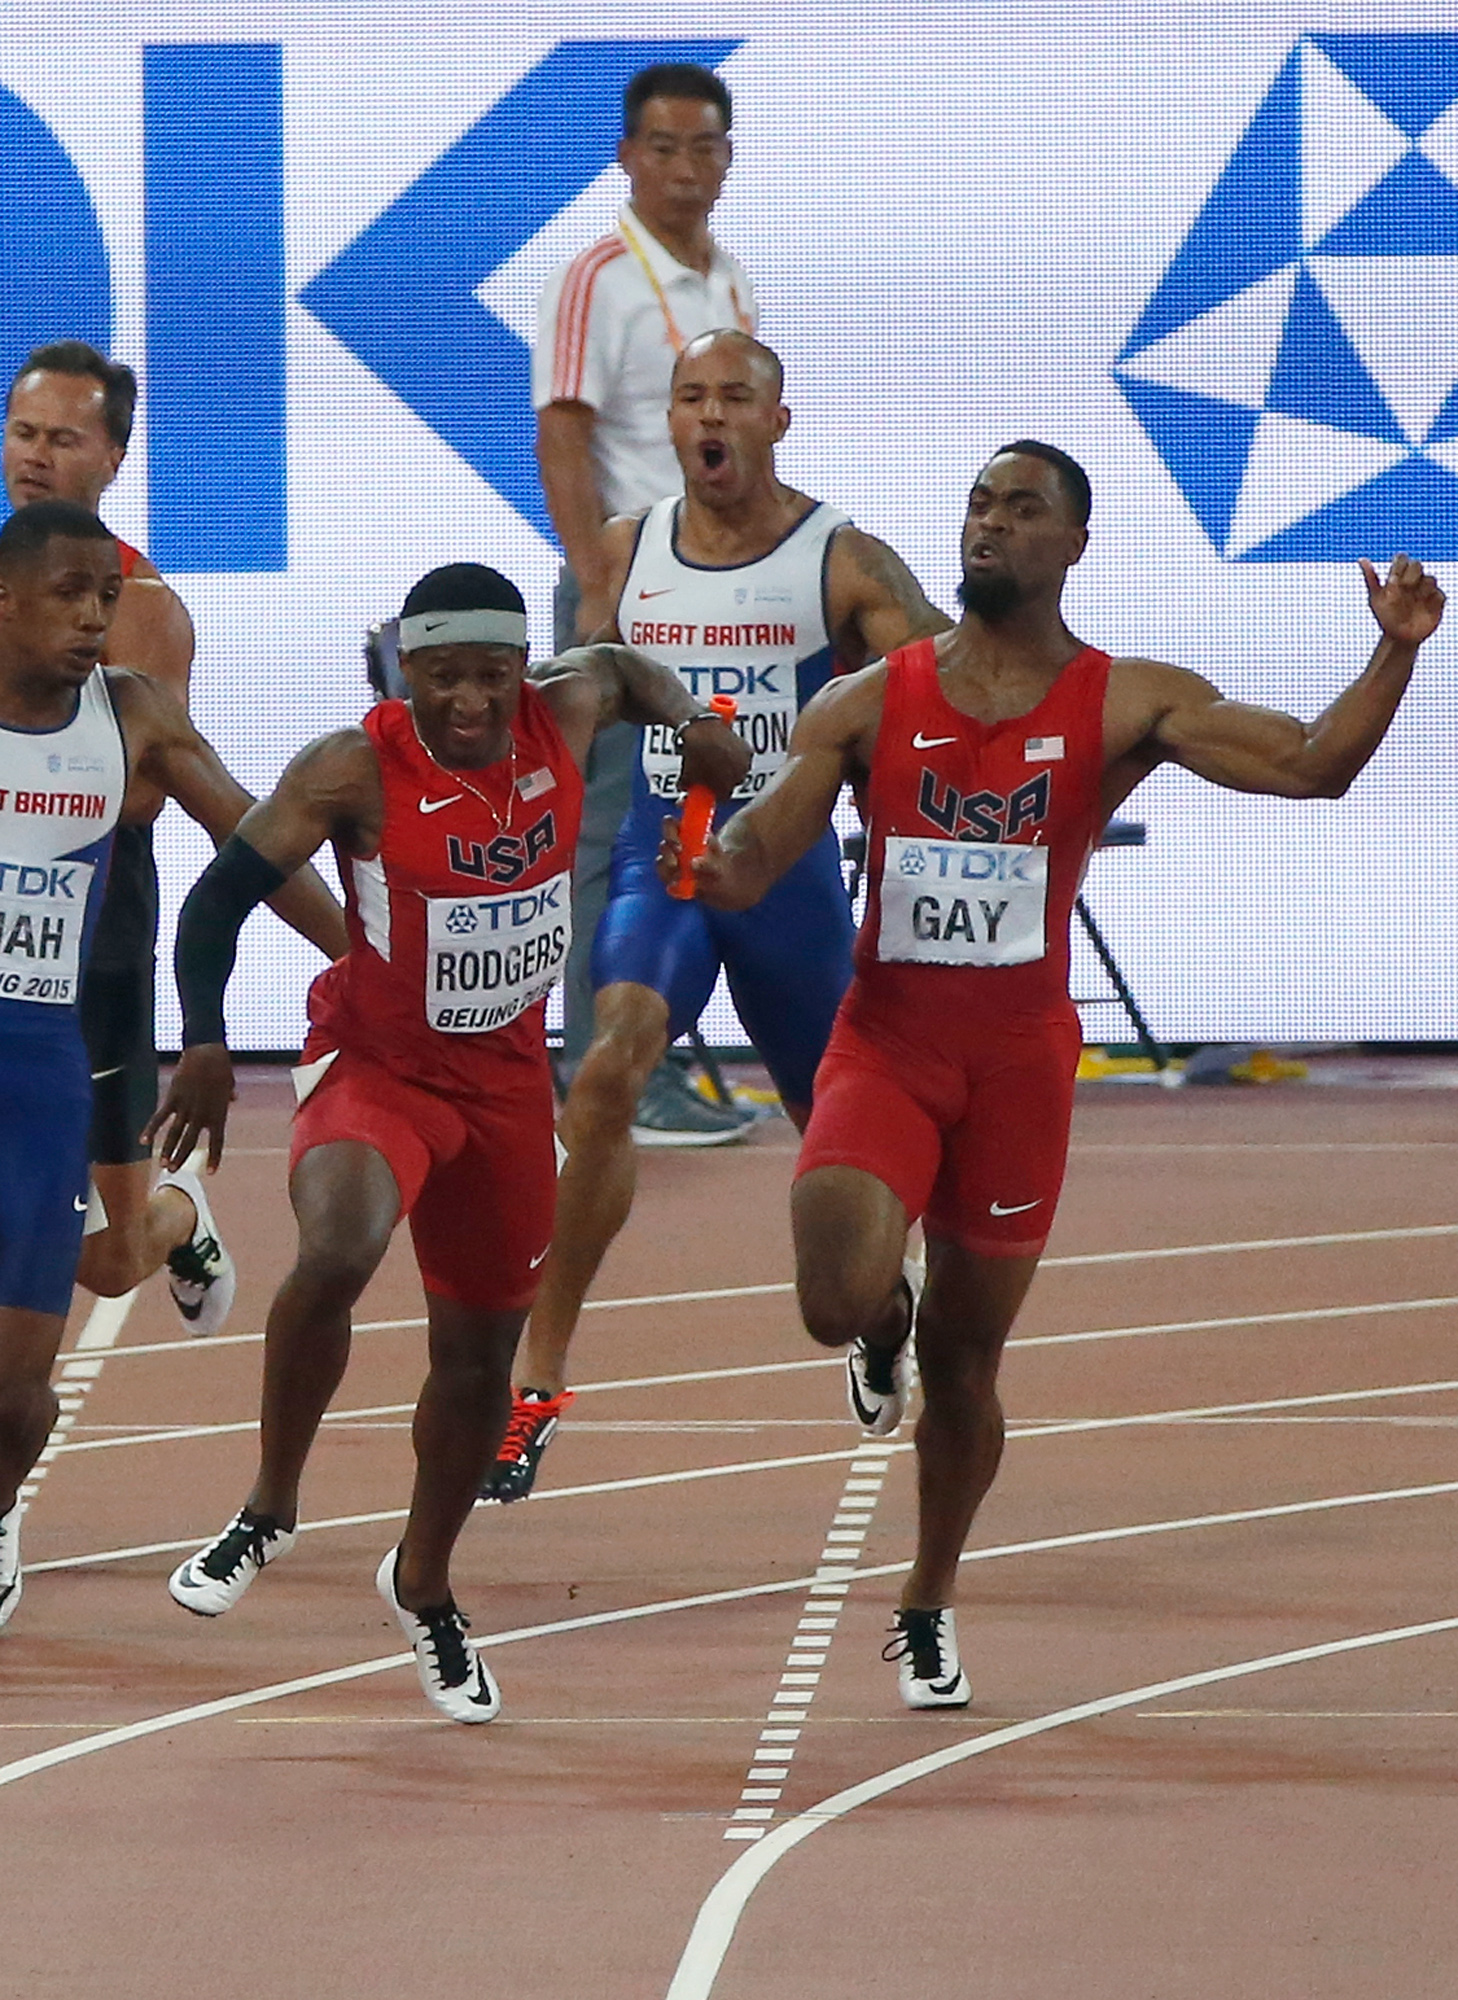 FILE - In this Aug. 29, 2015, file photo, United States' Mike Rodgers, center, takes the baton from Tyson Gay, right, outside of the designated handover zone in the men's 4x100m relay final at the World Athletics Championships at the Bird's Nest stadium i